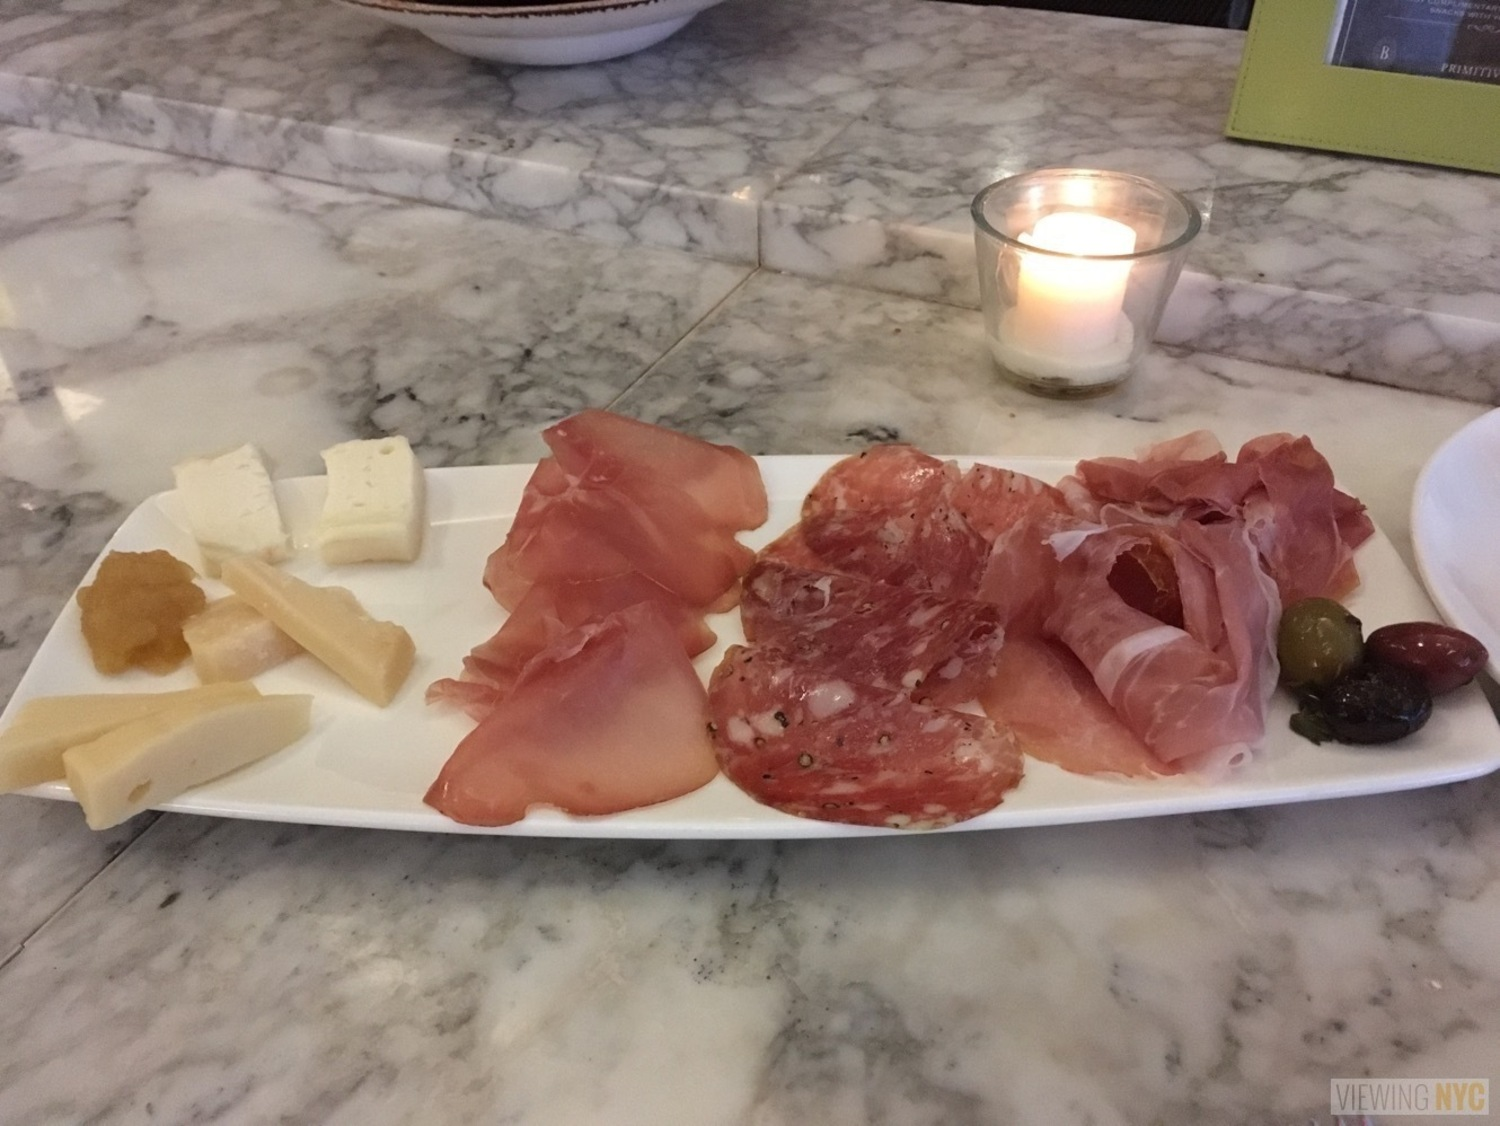 Cheese Plate | Da Claudio, 21 Ann St, New York, NY 10038